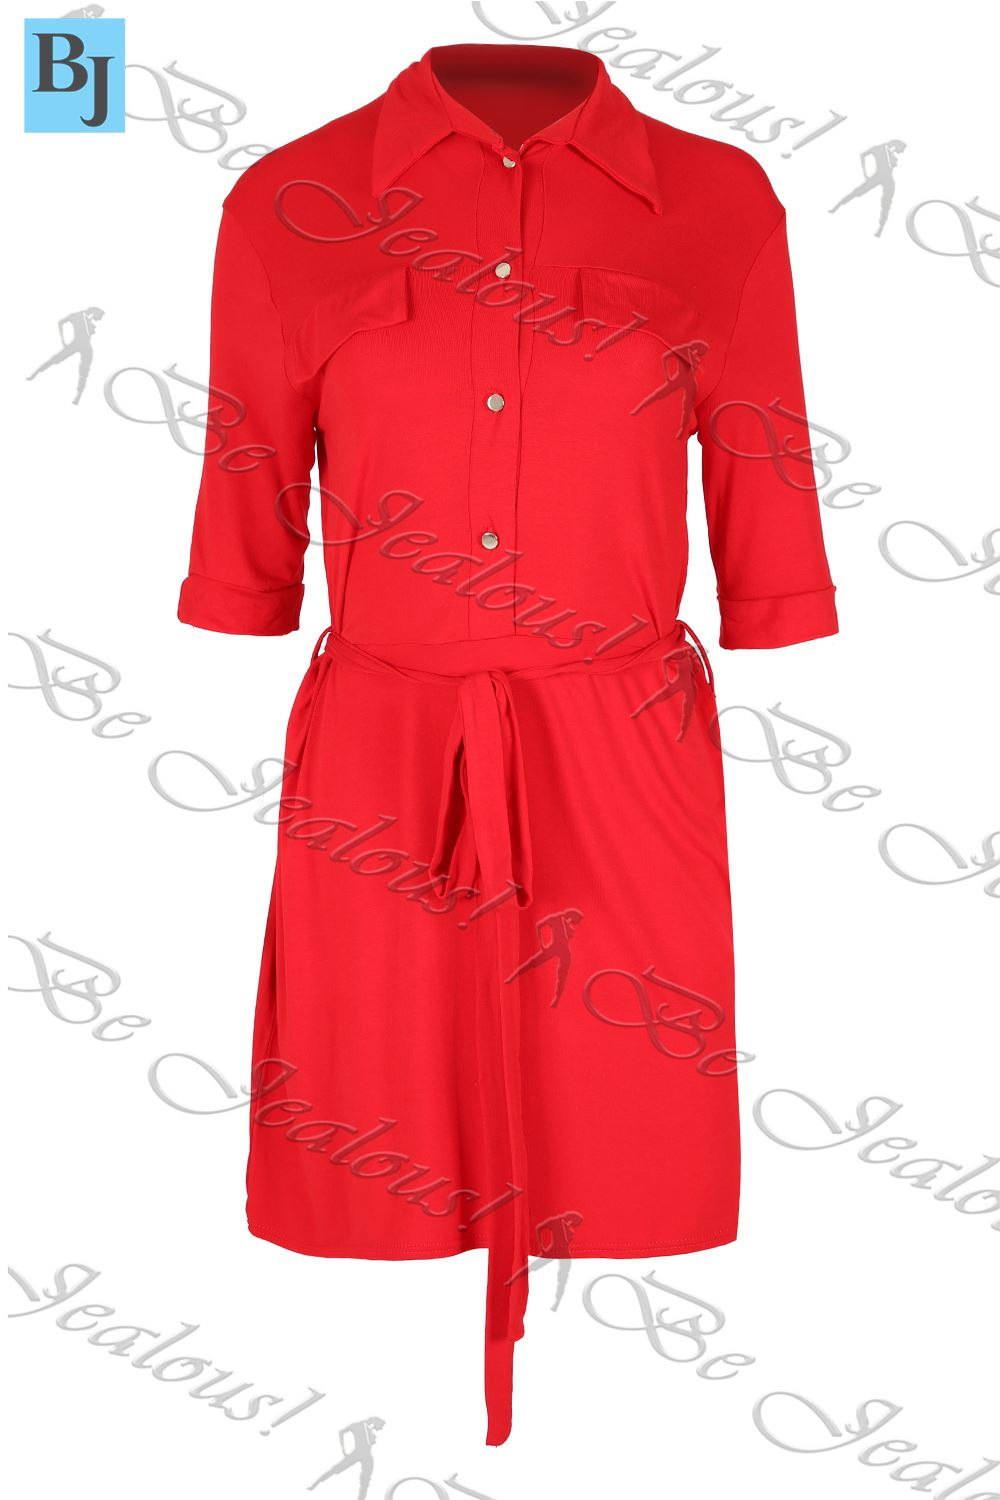 ladies shirt dress womens belted gold button 3 4 sleeve